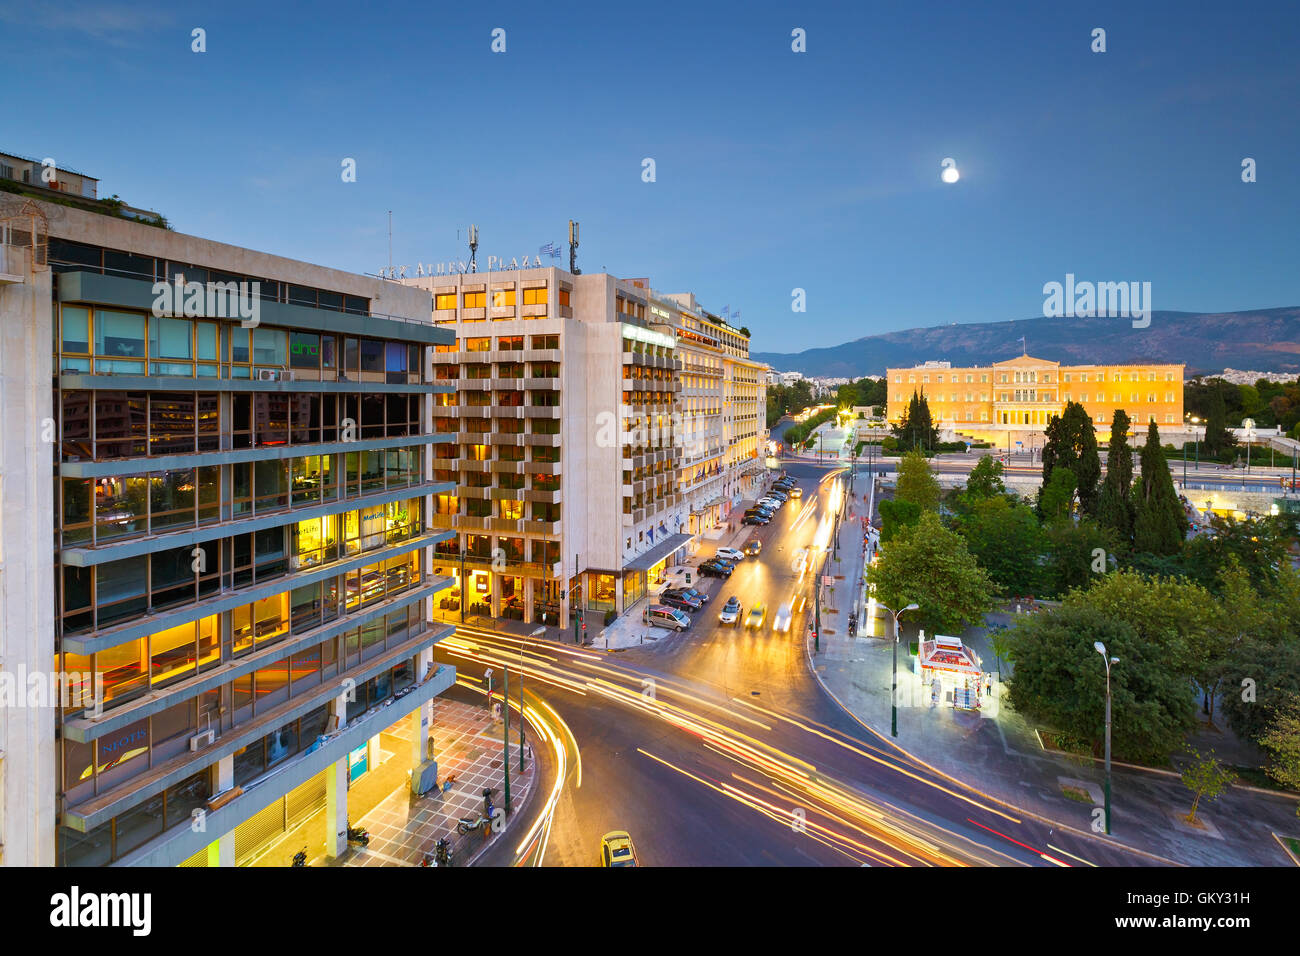 Syntagma square and building of parliament in central Athens. - Stock Image